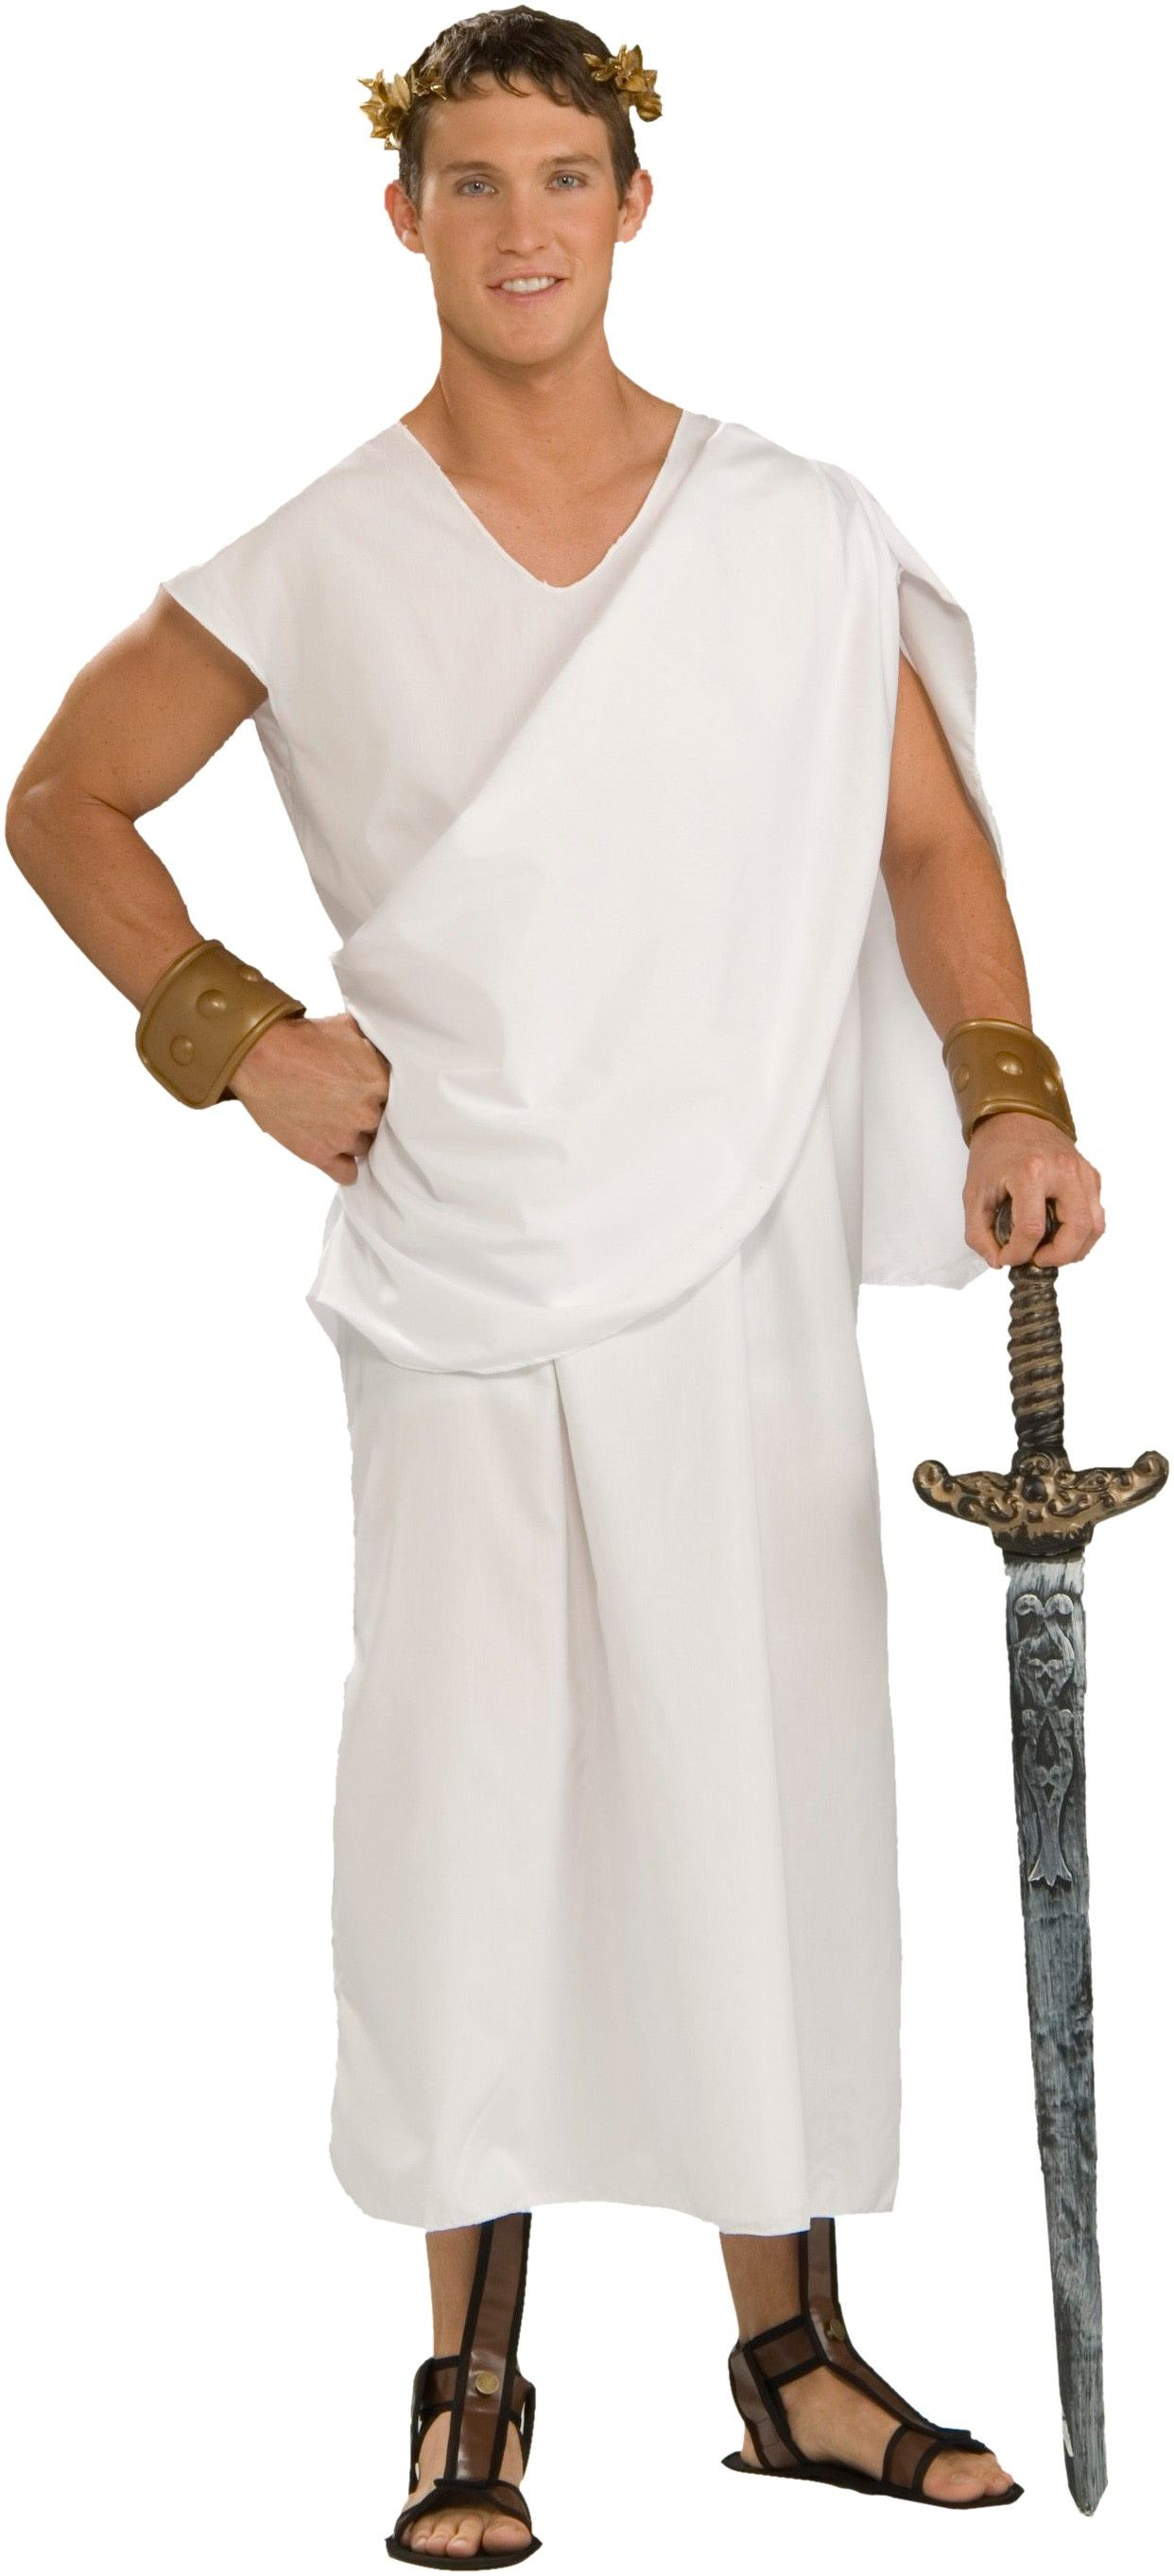 Toga Toga Adult Plus Costume Includes one white robe with